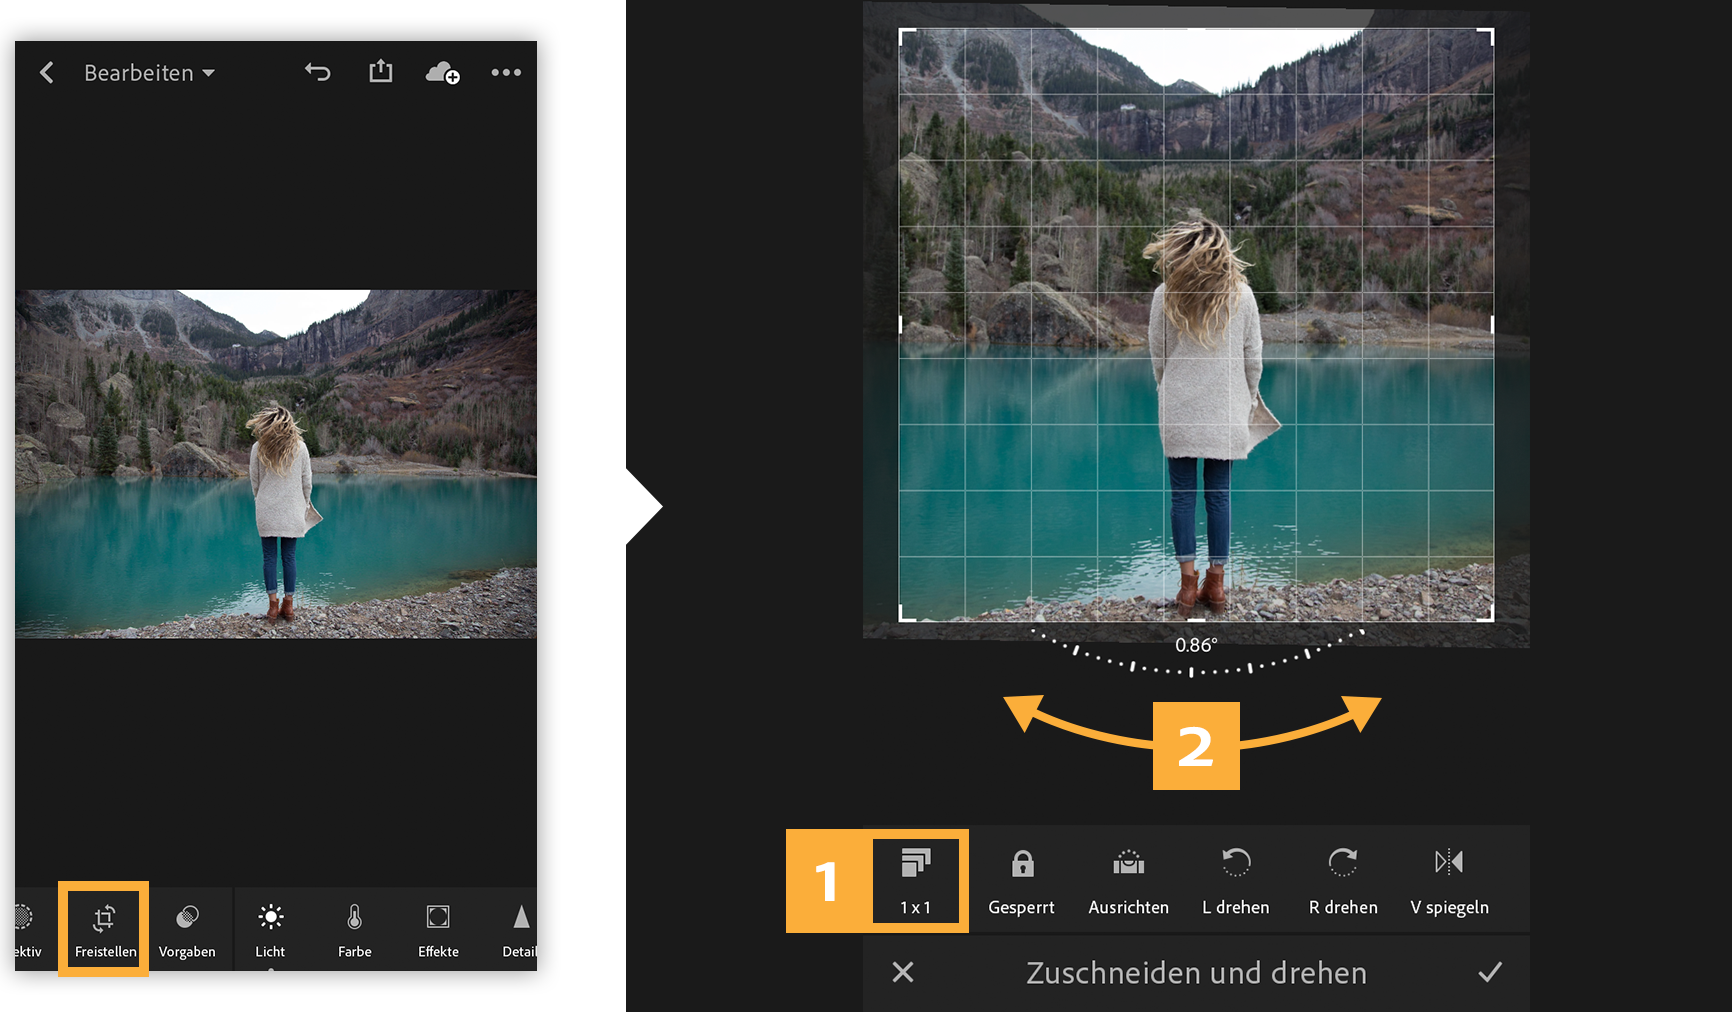 lightroom-mobileadjustments-step-02